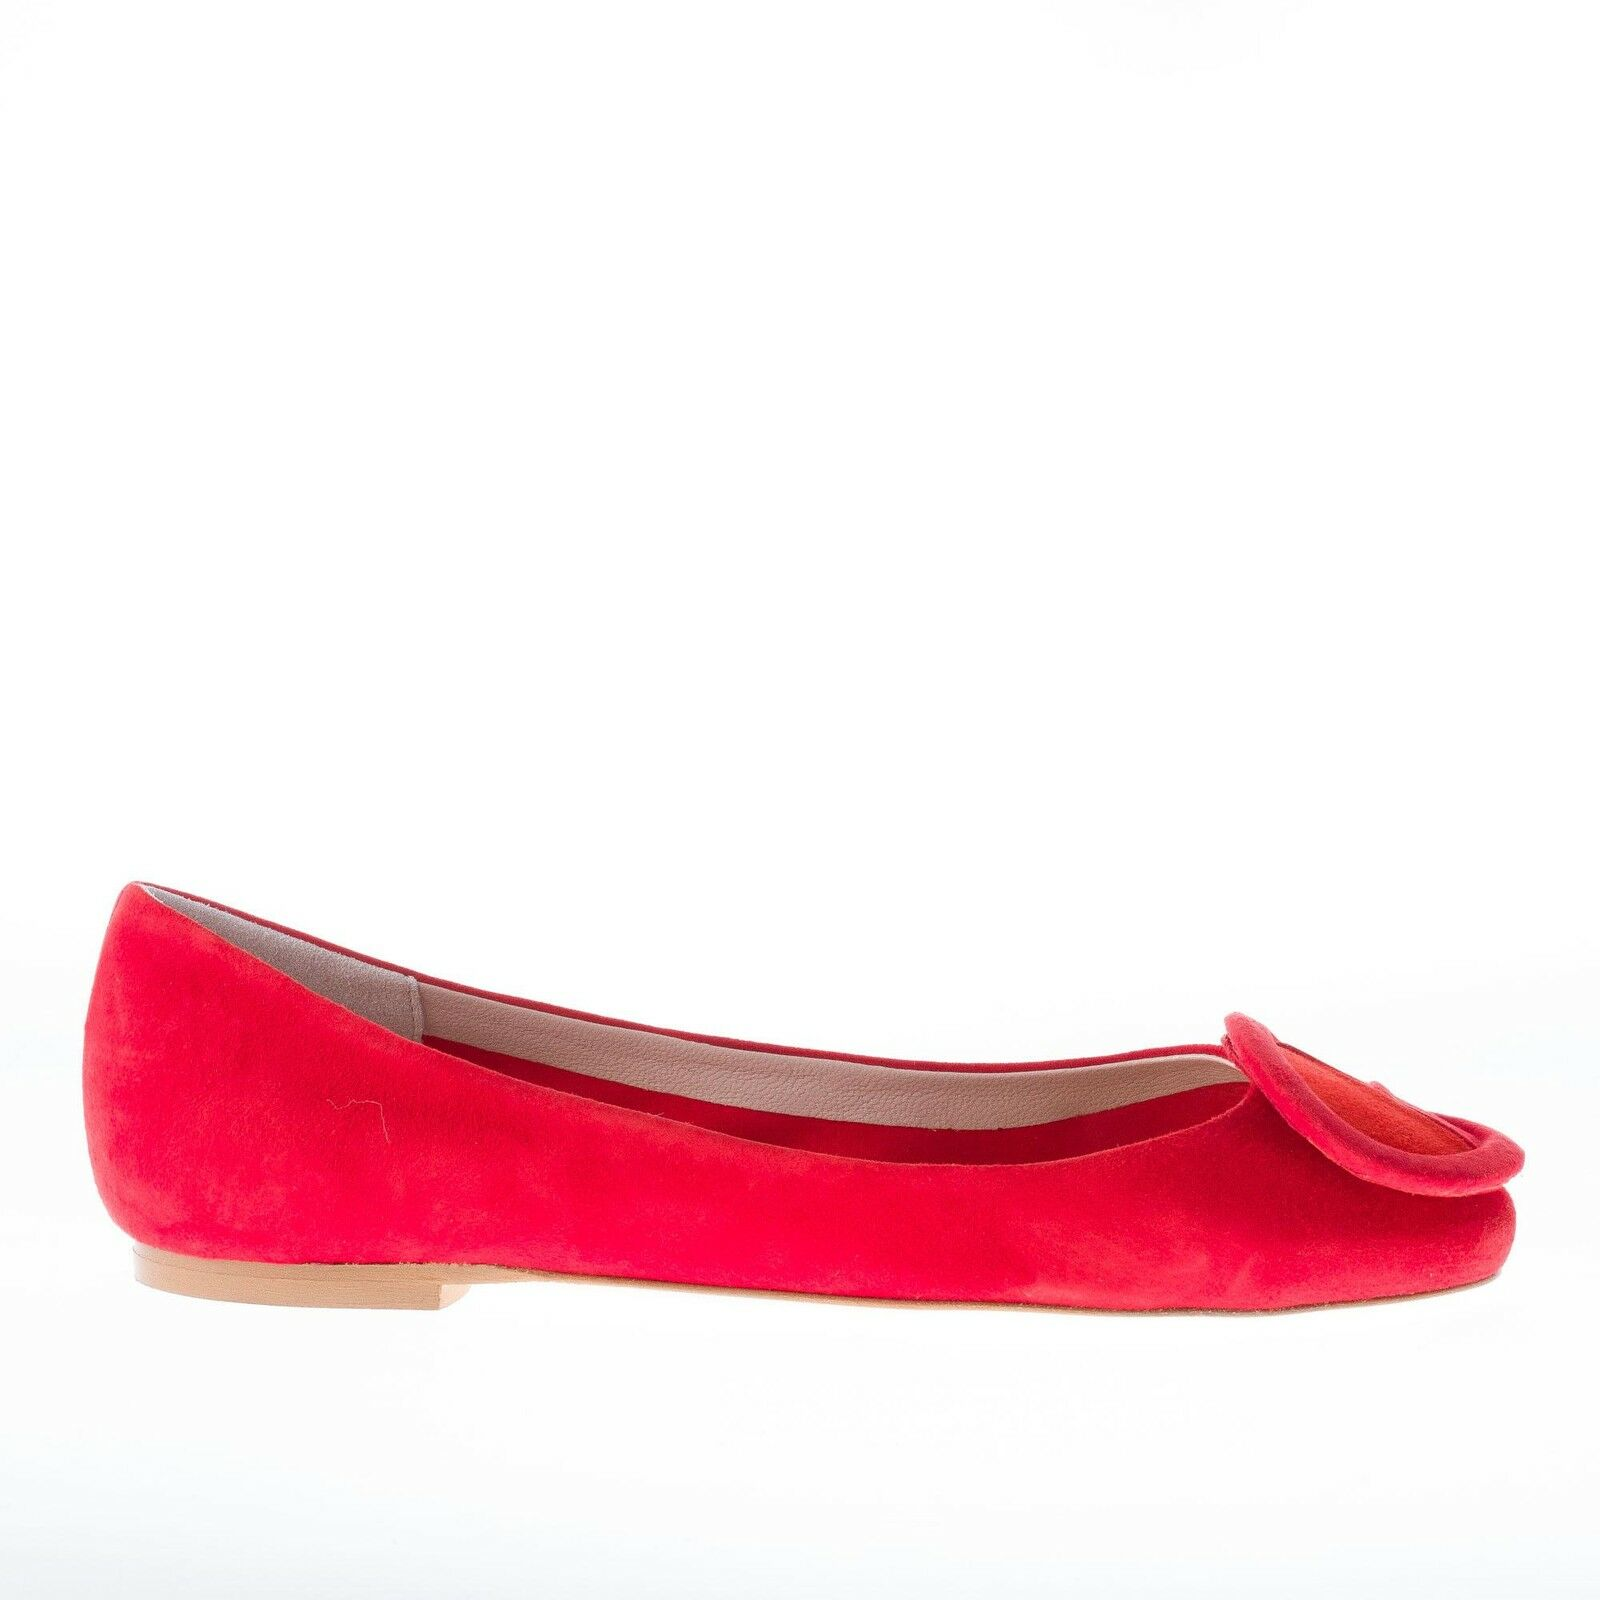 IL BORGO FIRENZE damen schuhe shoes red suede ballet flat patchwork suede buckle